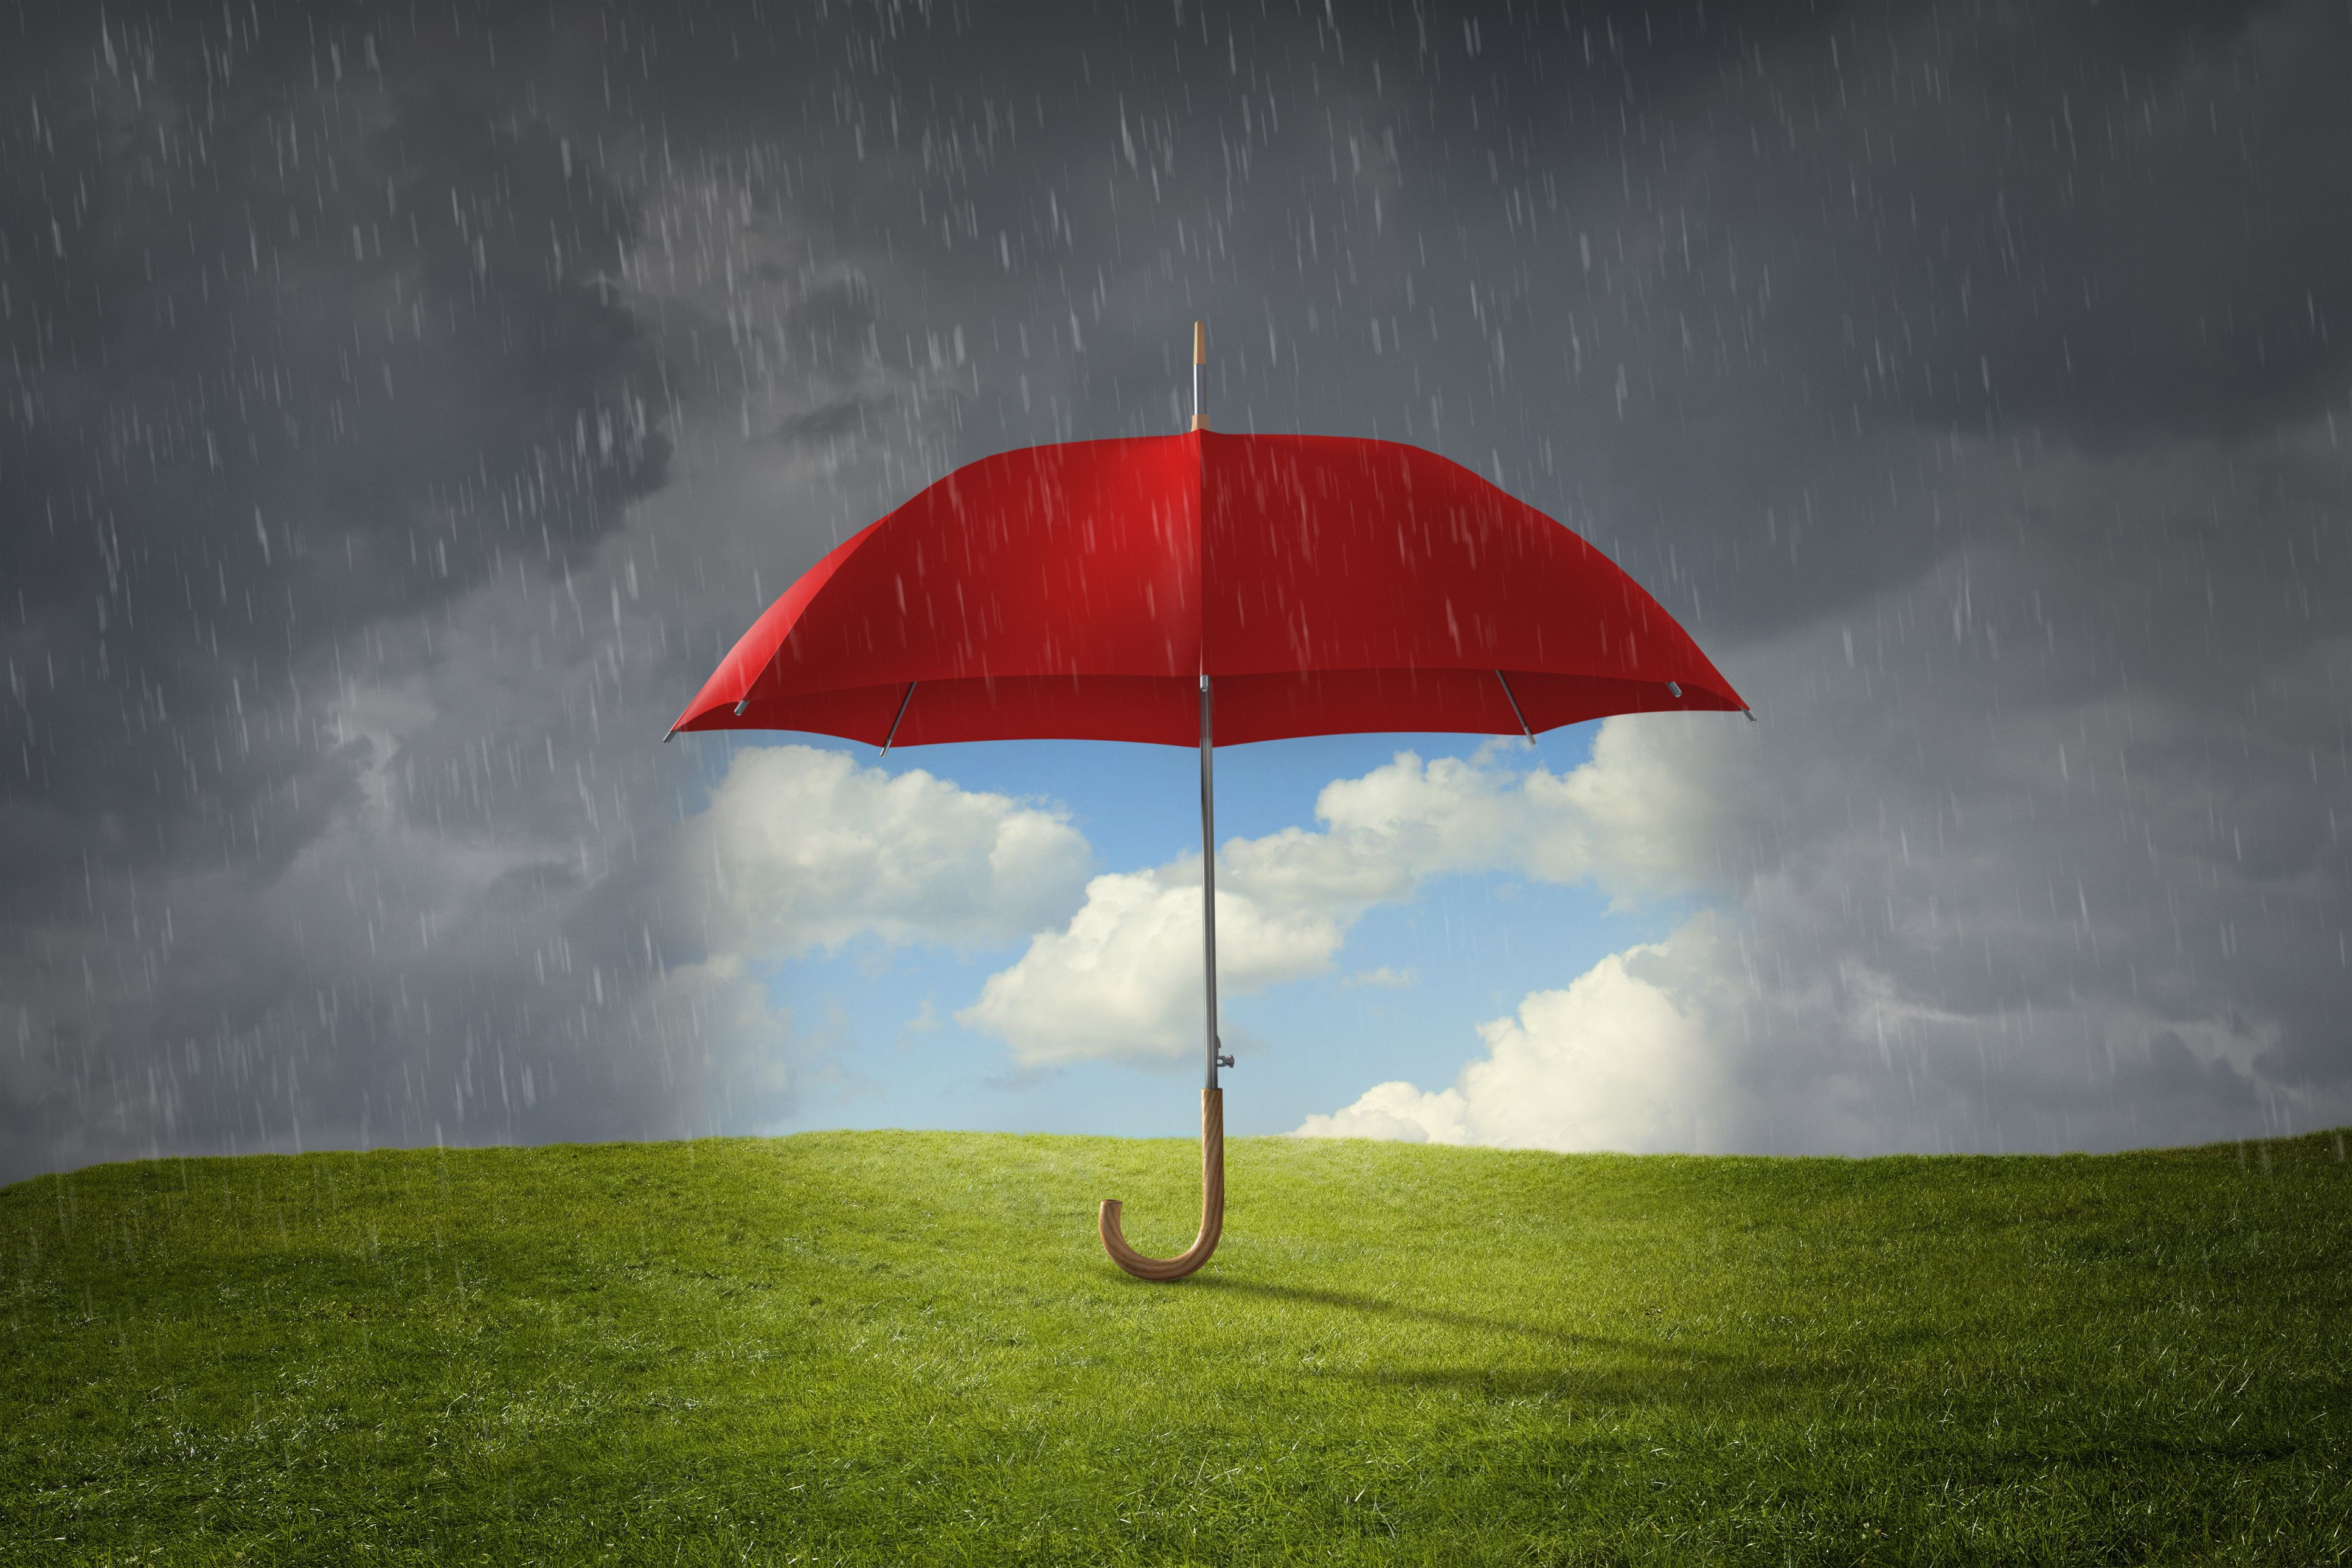 Illustration of an umbrella being rained on with a sunny patch underneith